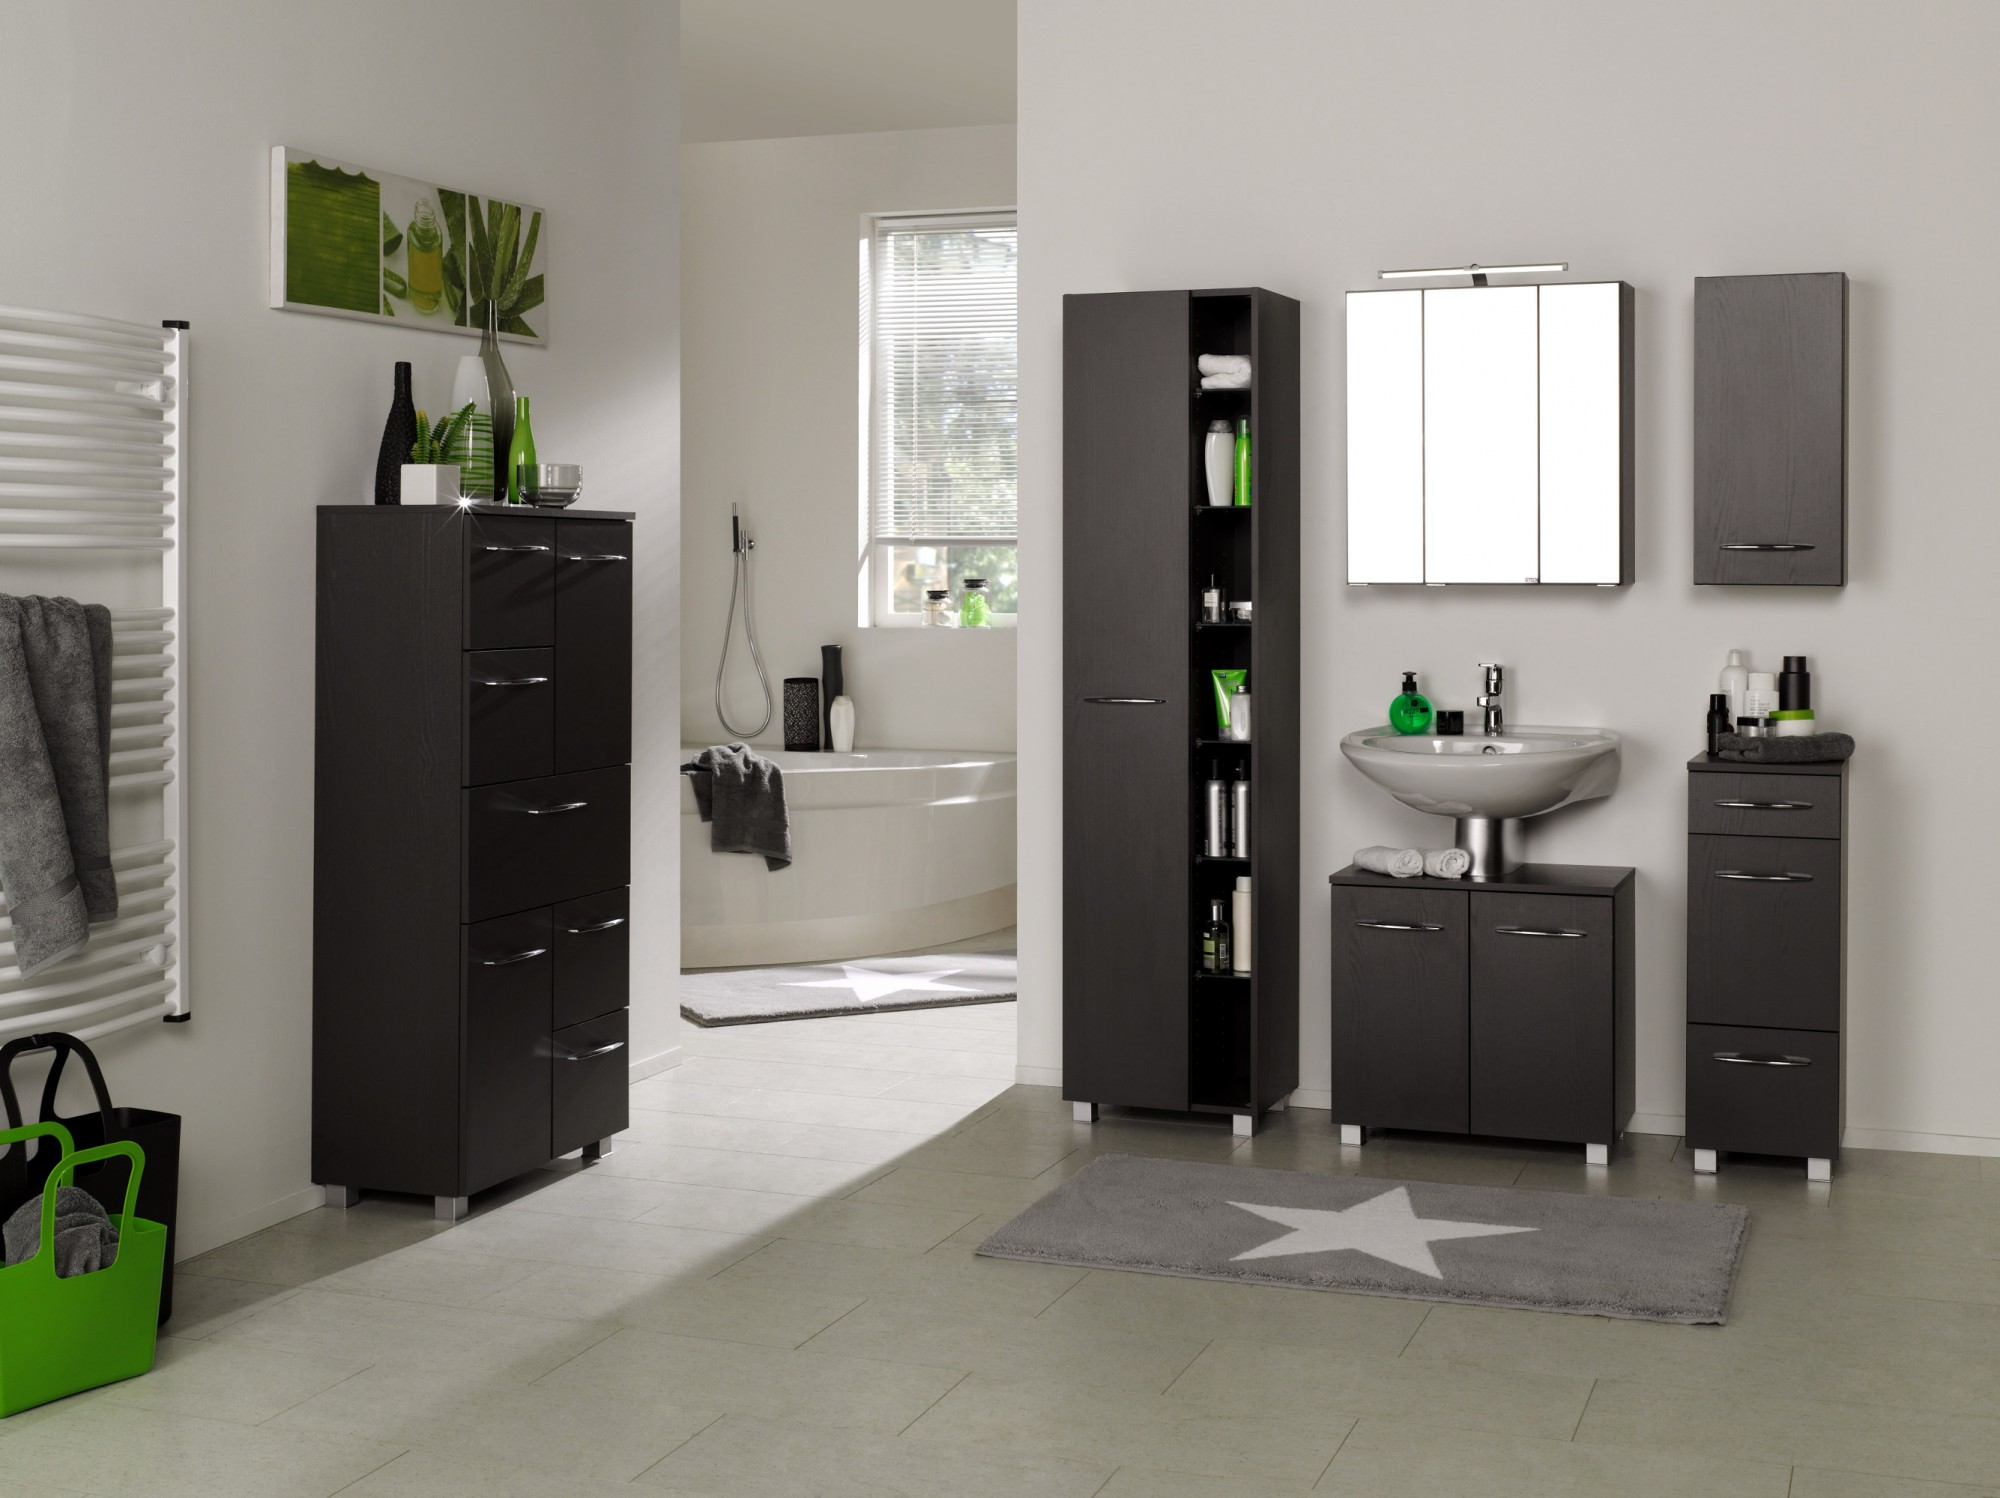 badezimmer midischrank portofino highboard badm bel badschrank 60cm graphit grau 4250163751493. Black Bedroom Furniture Sets. Home Design Ideas